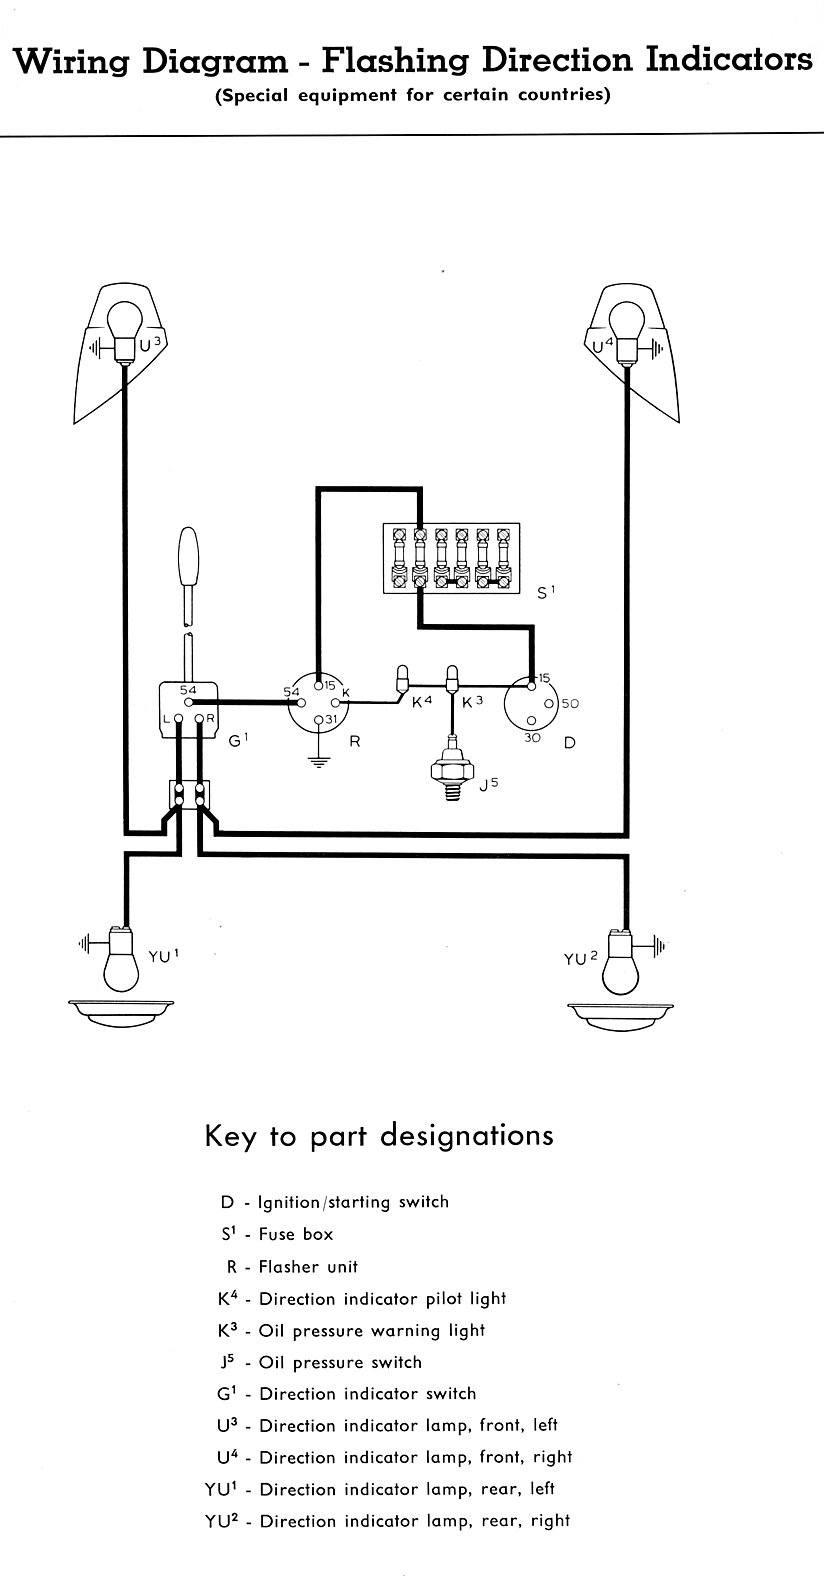 Distributor Wiring Diagram 1976 Duster Great Design Of 1975 Gm Hei Thesamba Com Type 2 Diagrams Rh Coil And Electronic Ignition